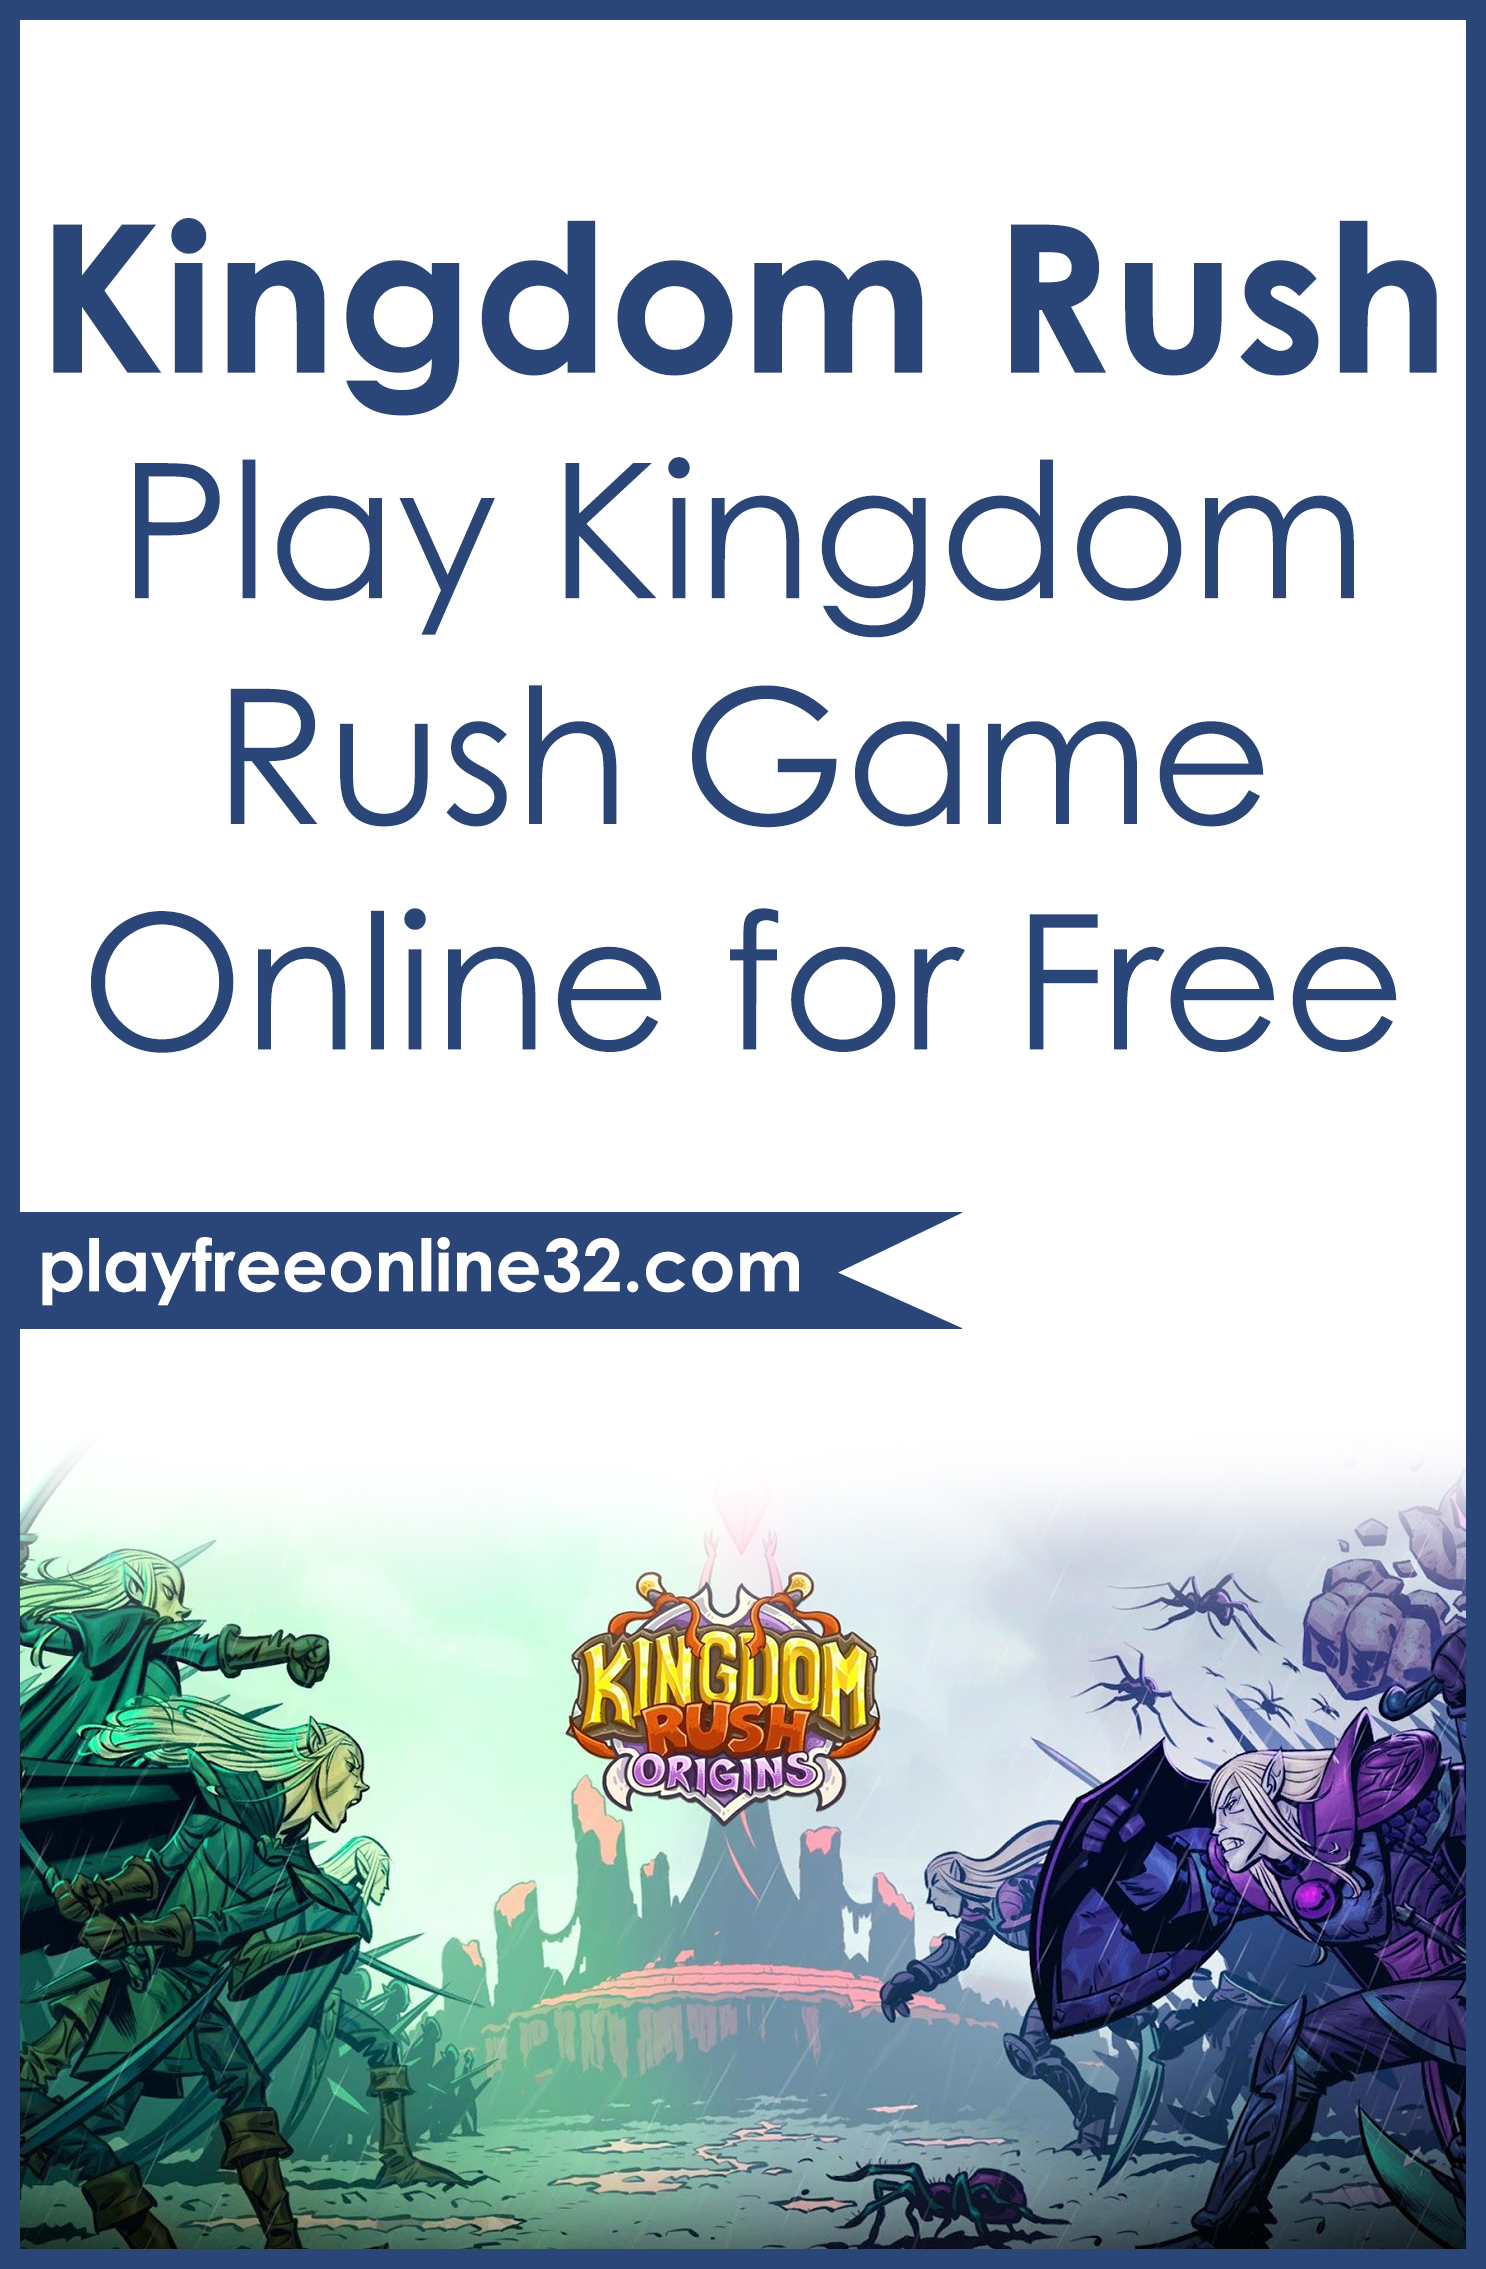 Kingdom Rush • Play Kingdom Rush Game Online for Free Pinterest